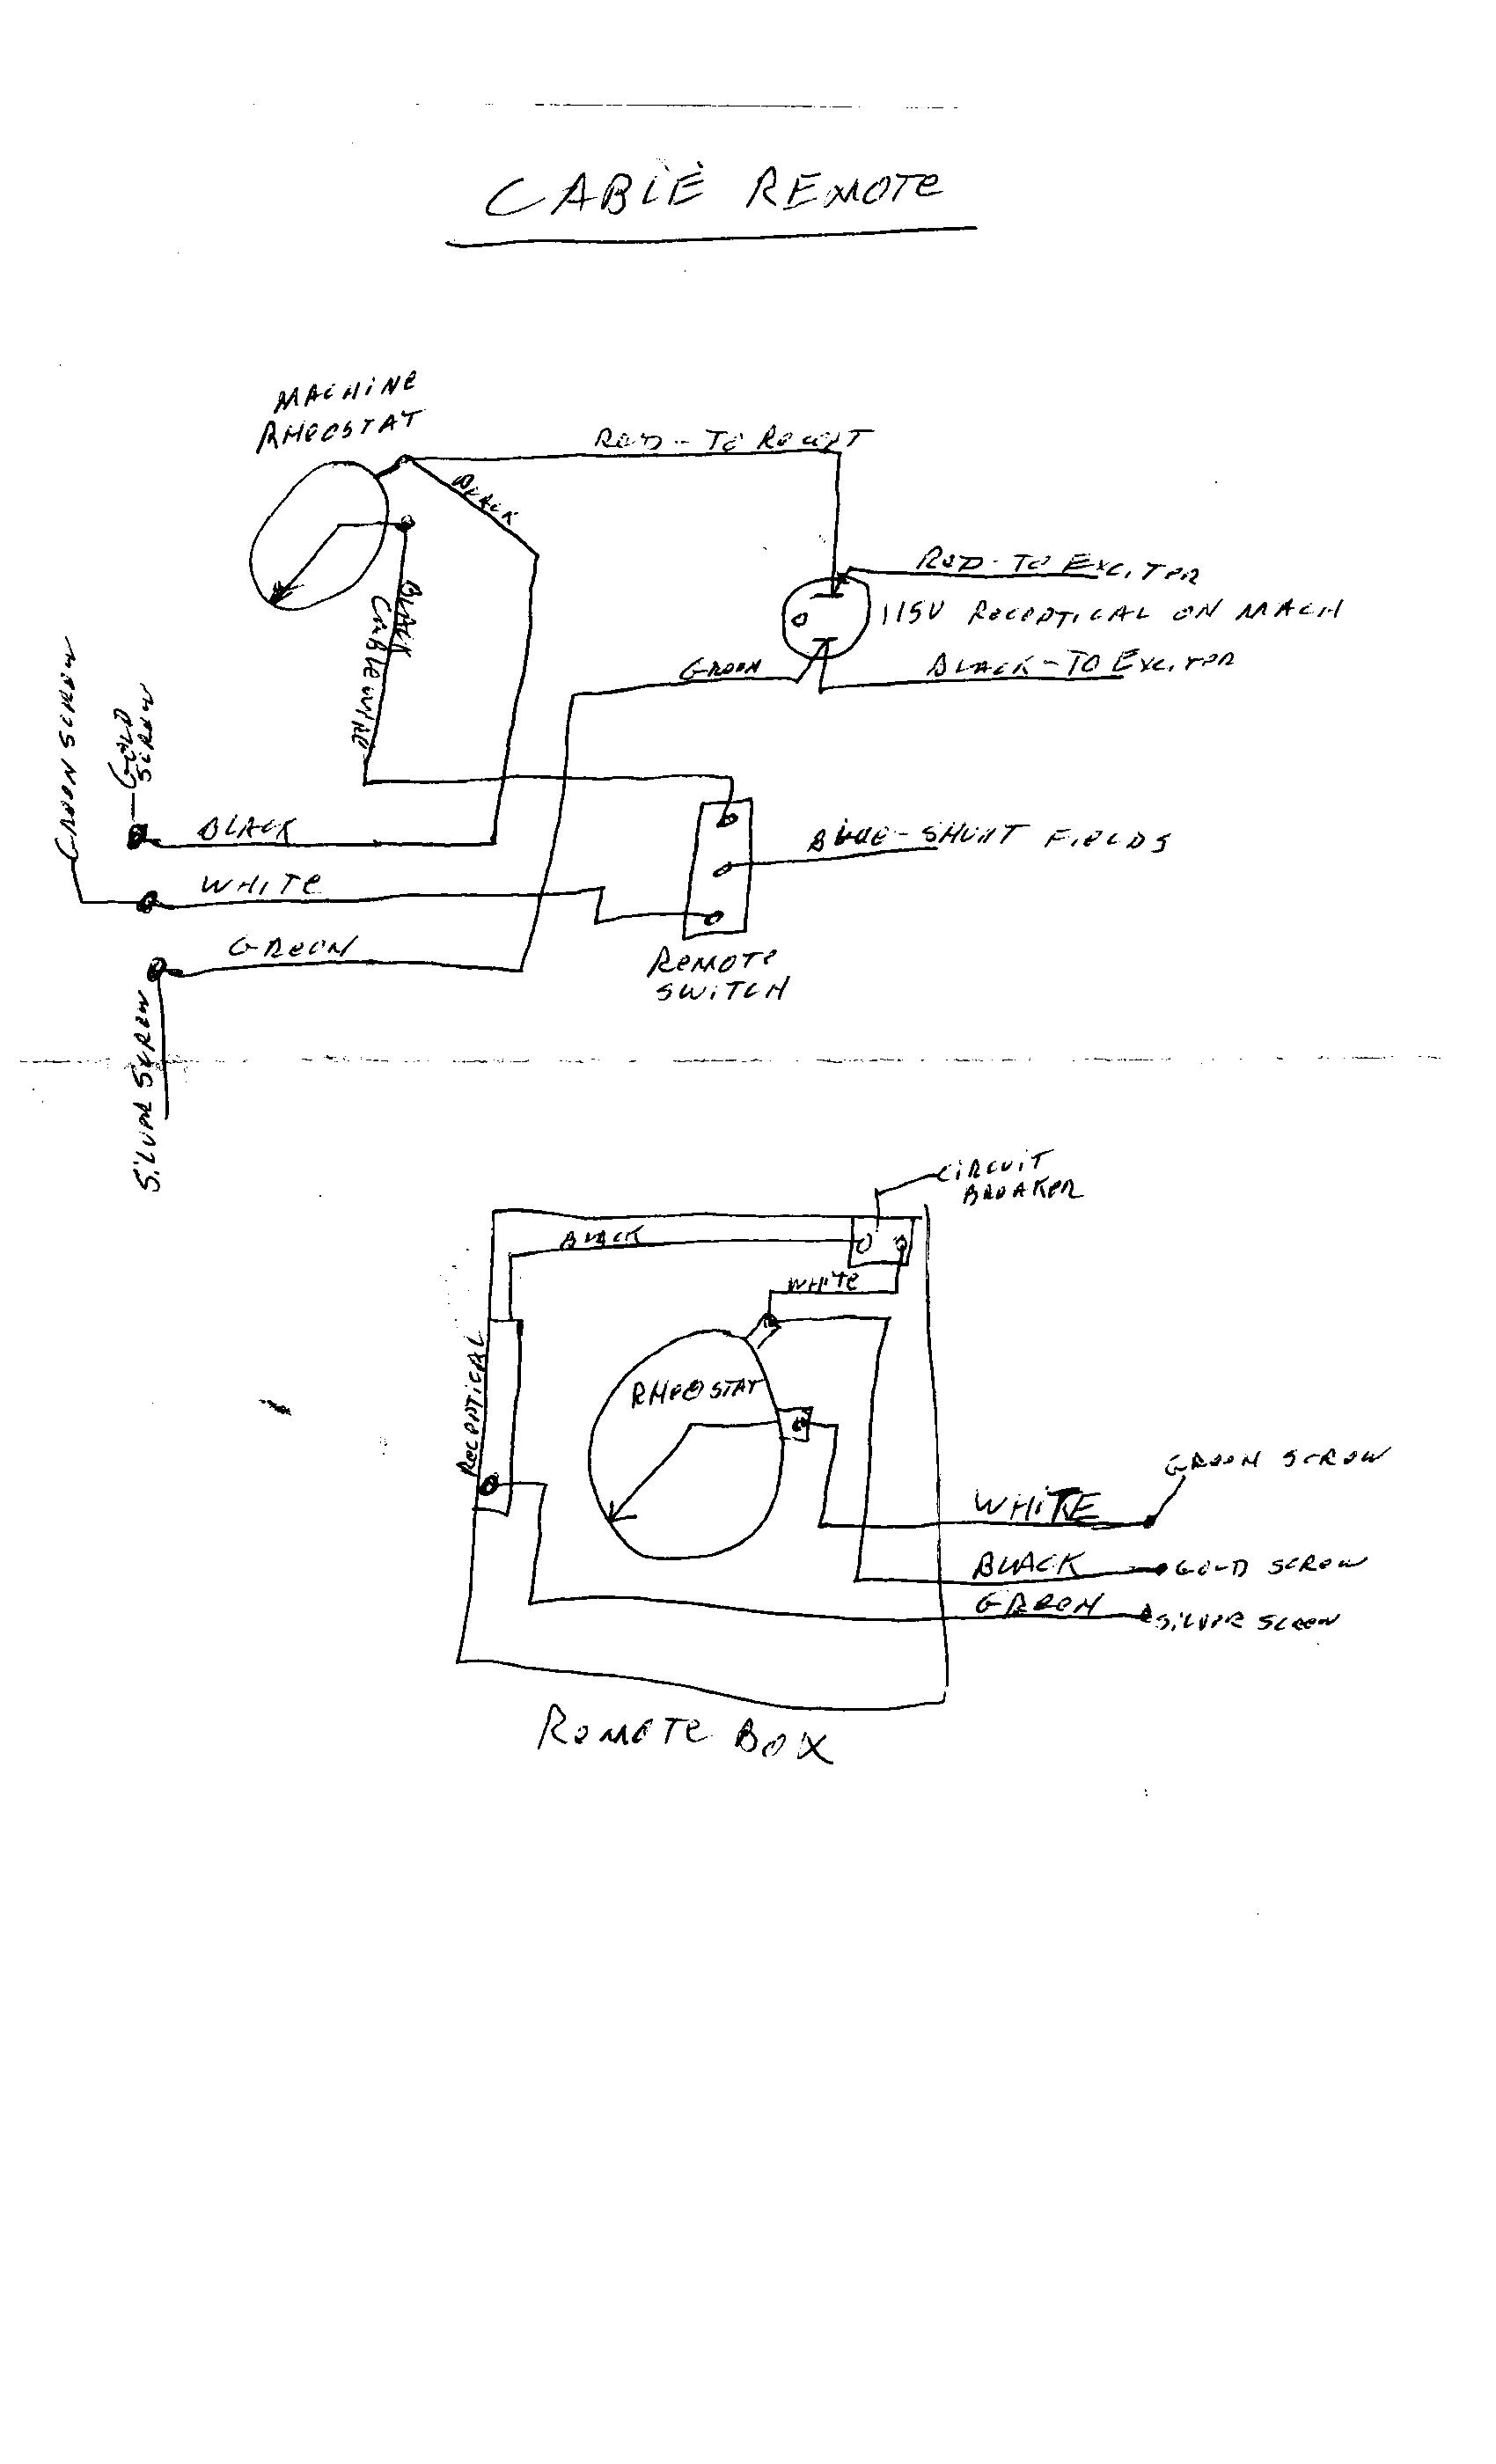 Pioneer Deh P6800mp Wiring Harness 34 Diagram Images X3600ui 24ub Diagrams Cable Remote001resize6652c1095ssl